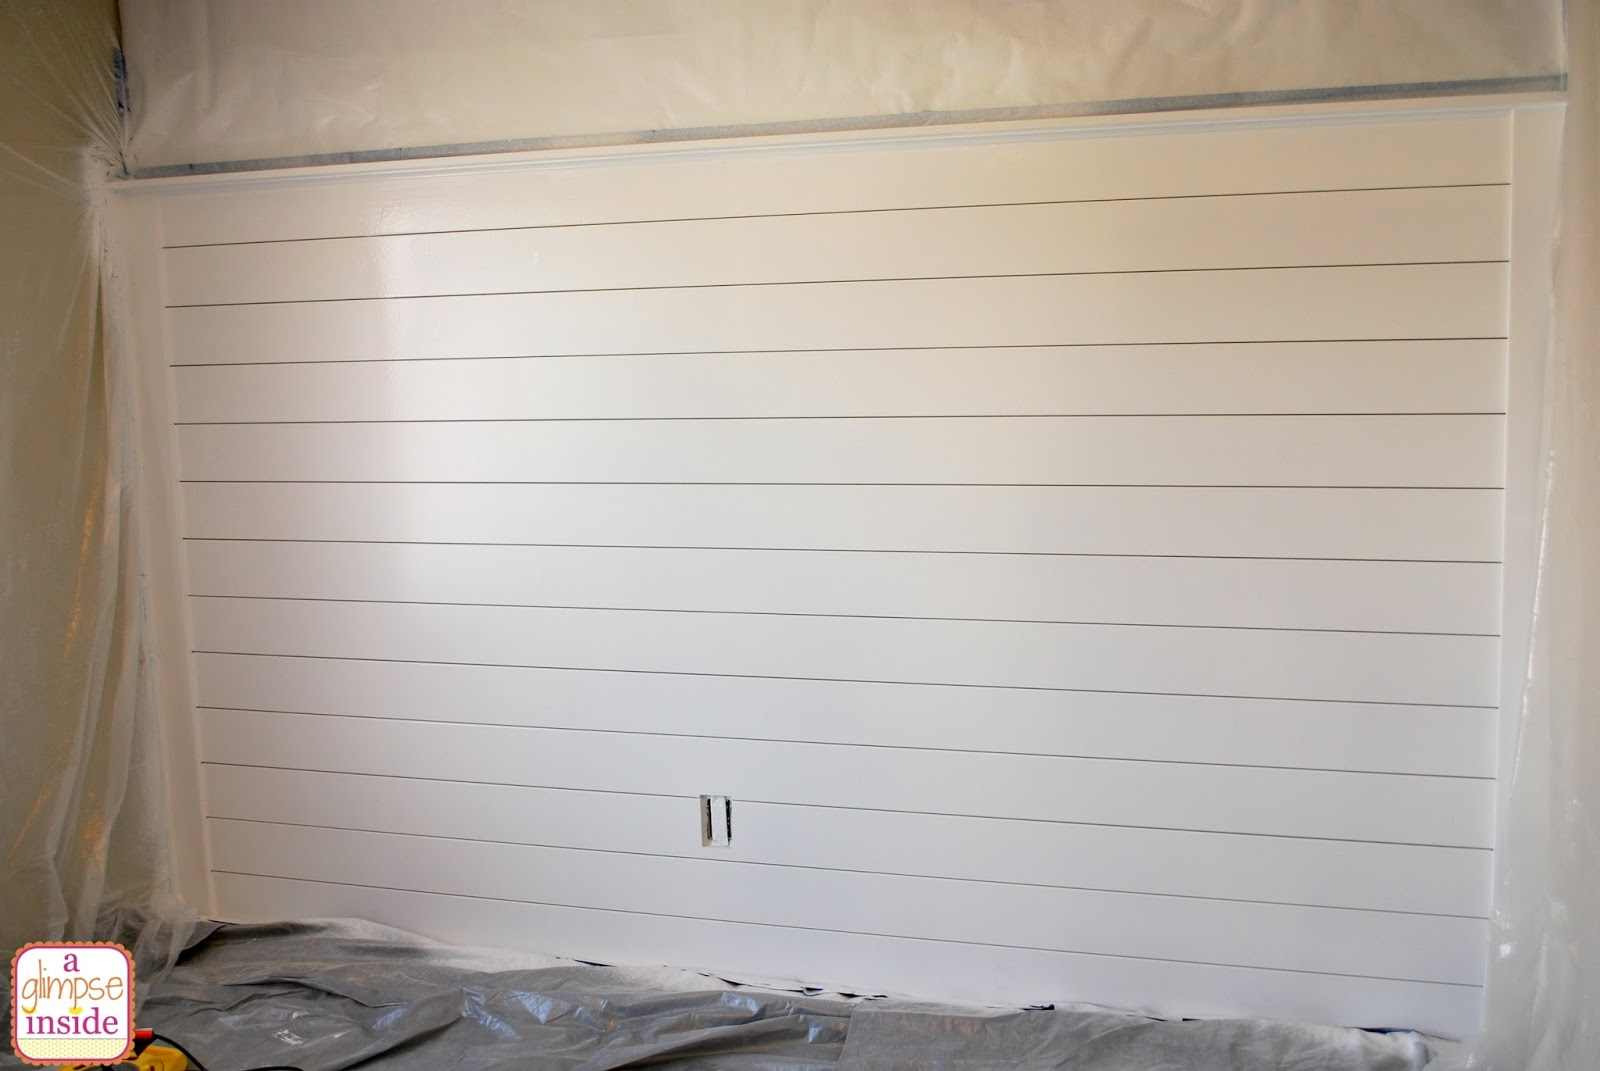 ... , paint and primer in one, in a semi-gloss finish to cover the wood